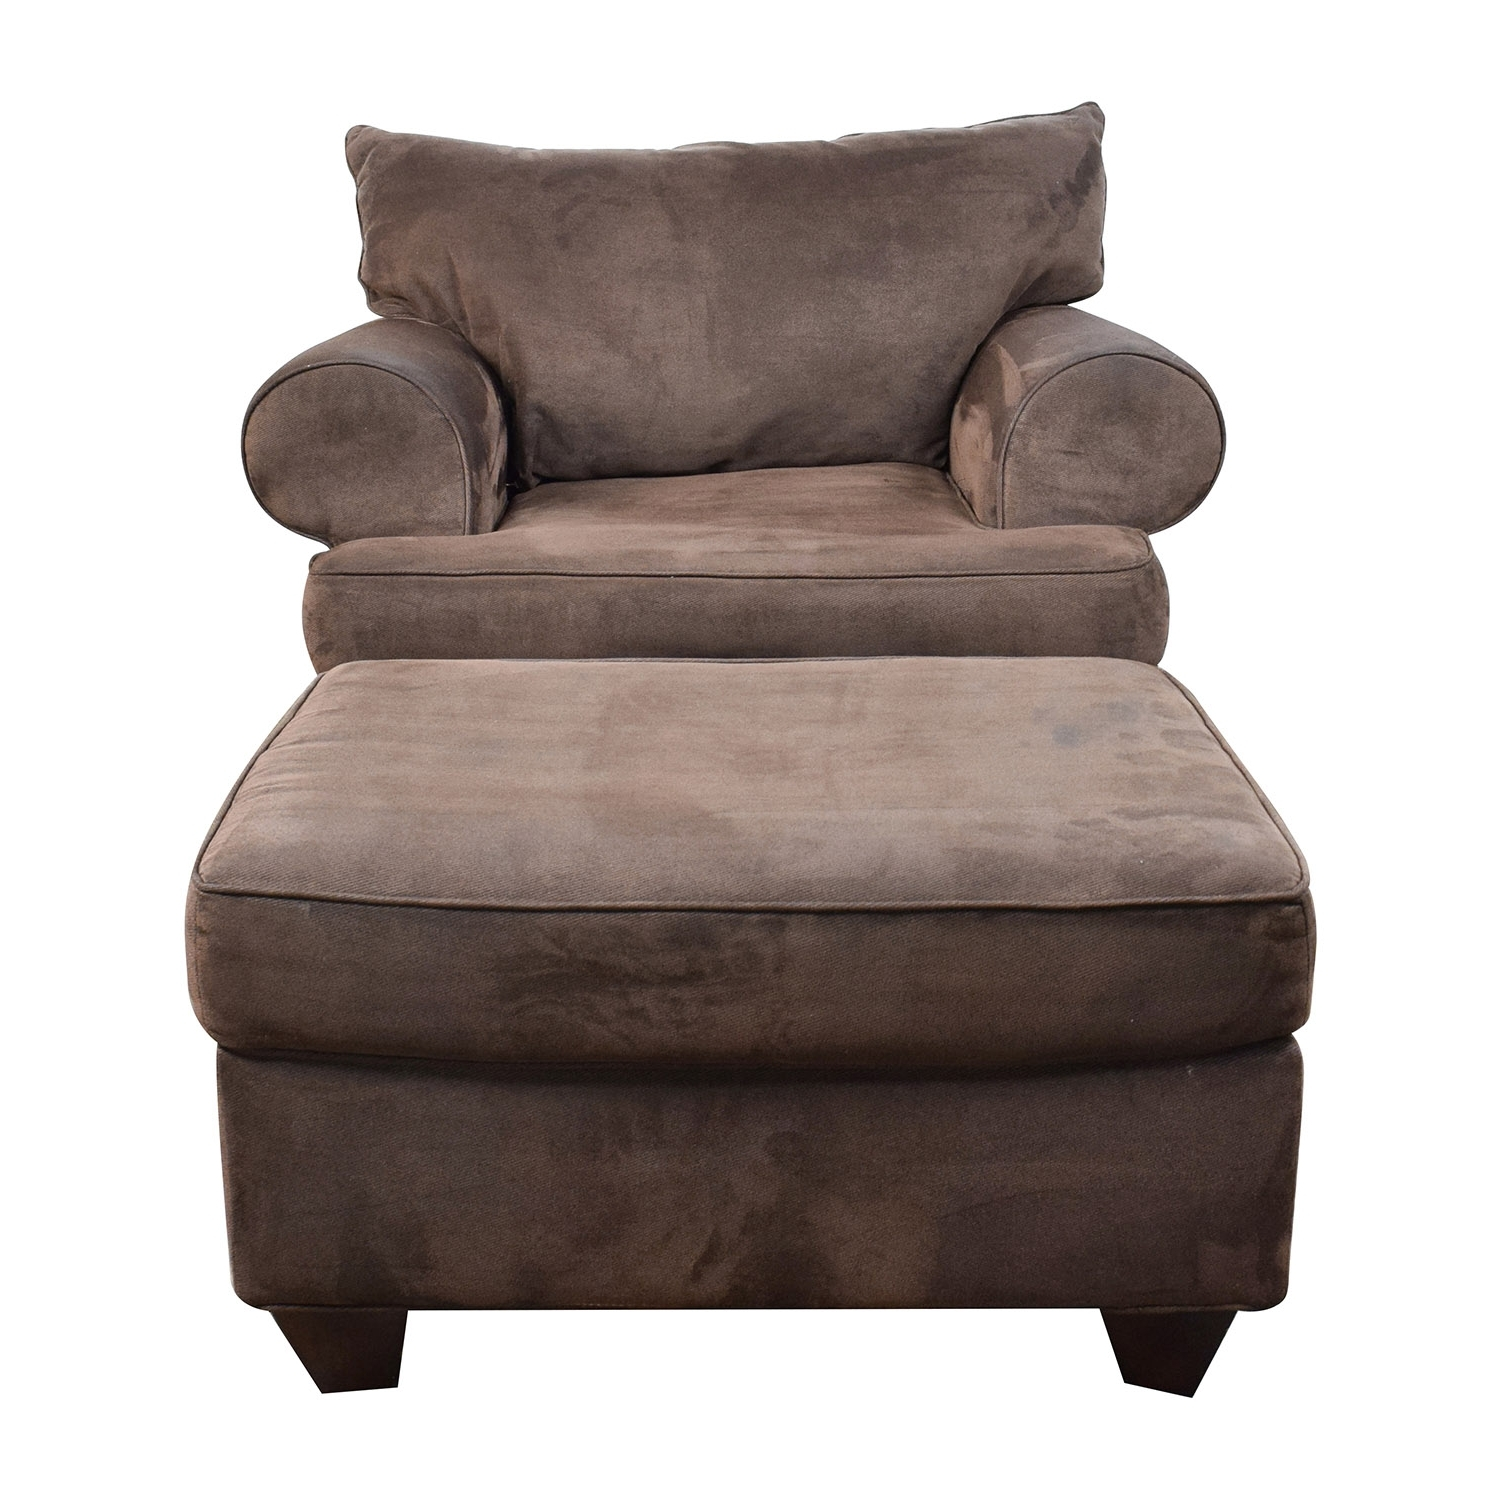 [%67% Off – Dark Brown Sofa Chair With Ottoman / Chairs In Most Recently Released Brown Sofa Chairs|Brown Sofa Chairs With Regard To 2018 67% Off – Dark Brown Sofa Chair With Ottoman / Chairs|Newest Brown Sofa Chairs Intended For 67% Off – Dark Brown Sofa Chair With Ottoman / Chairs|Trendy 67% Off – Dark Brown Sofa Chair With Ottoman / Chairs With Brown Sofa Chairs%] (View 2 of 20)